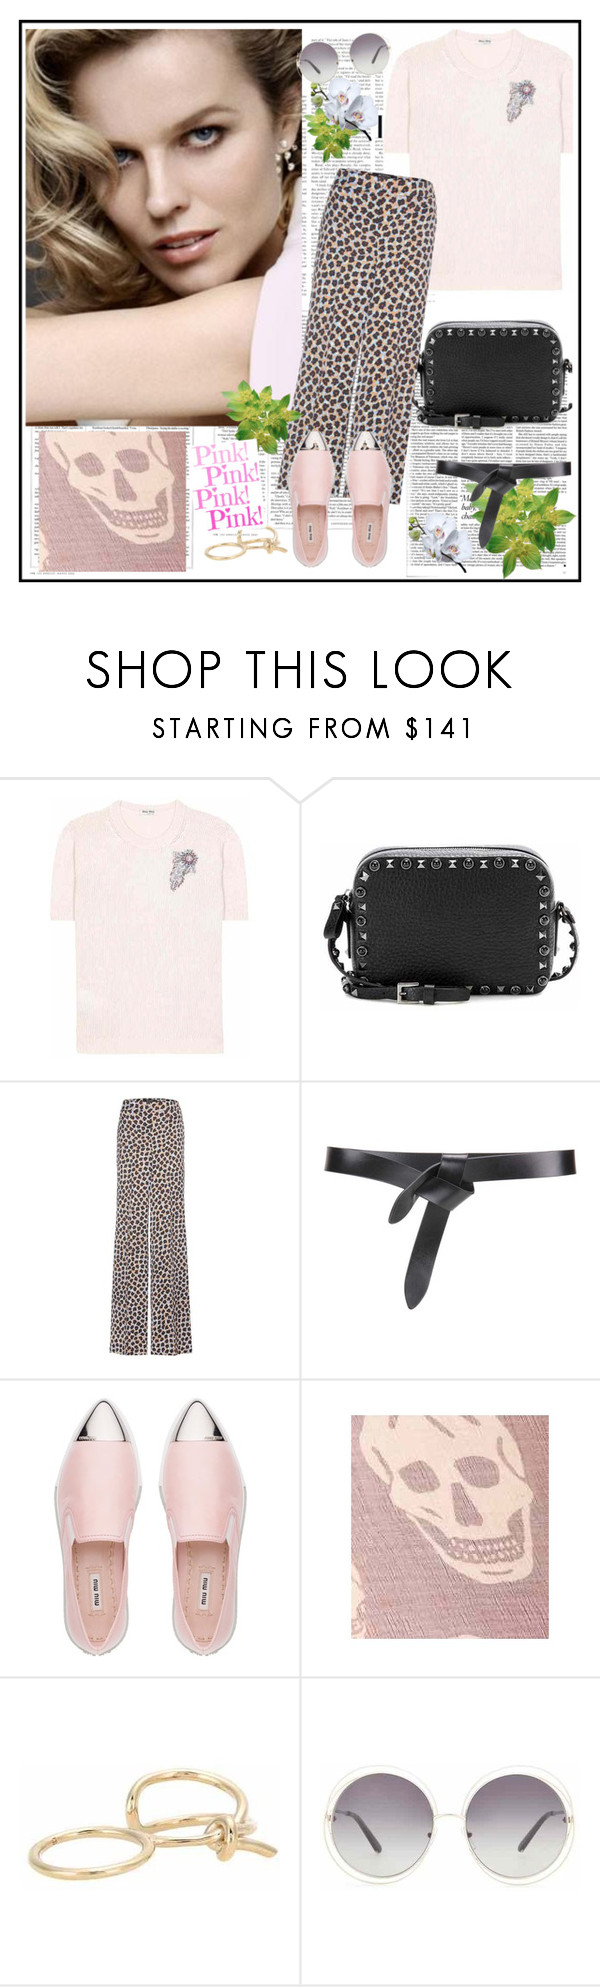 """Pre Fall 2016♥♥♥♥♥♥"" by marthalux ❤ liked on Polyvore featuring Miu Miu, Valentino, Etro, Étoile Isabel Marant, Alexander McQueen, Balenciaga, Chloé, Victoria Beckham, StreetStyle and fallstyle"